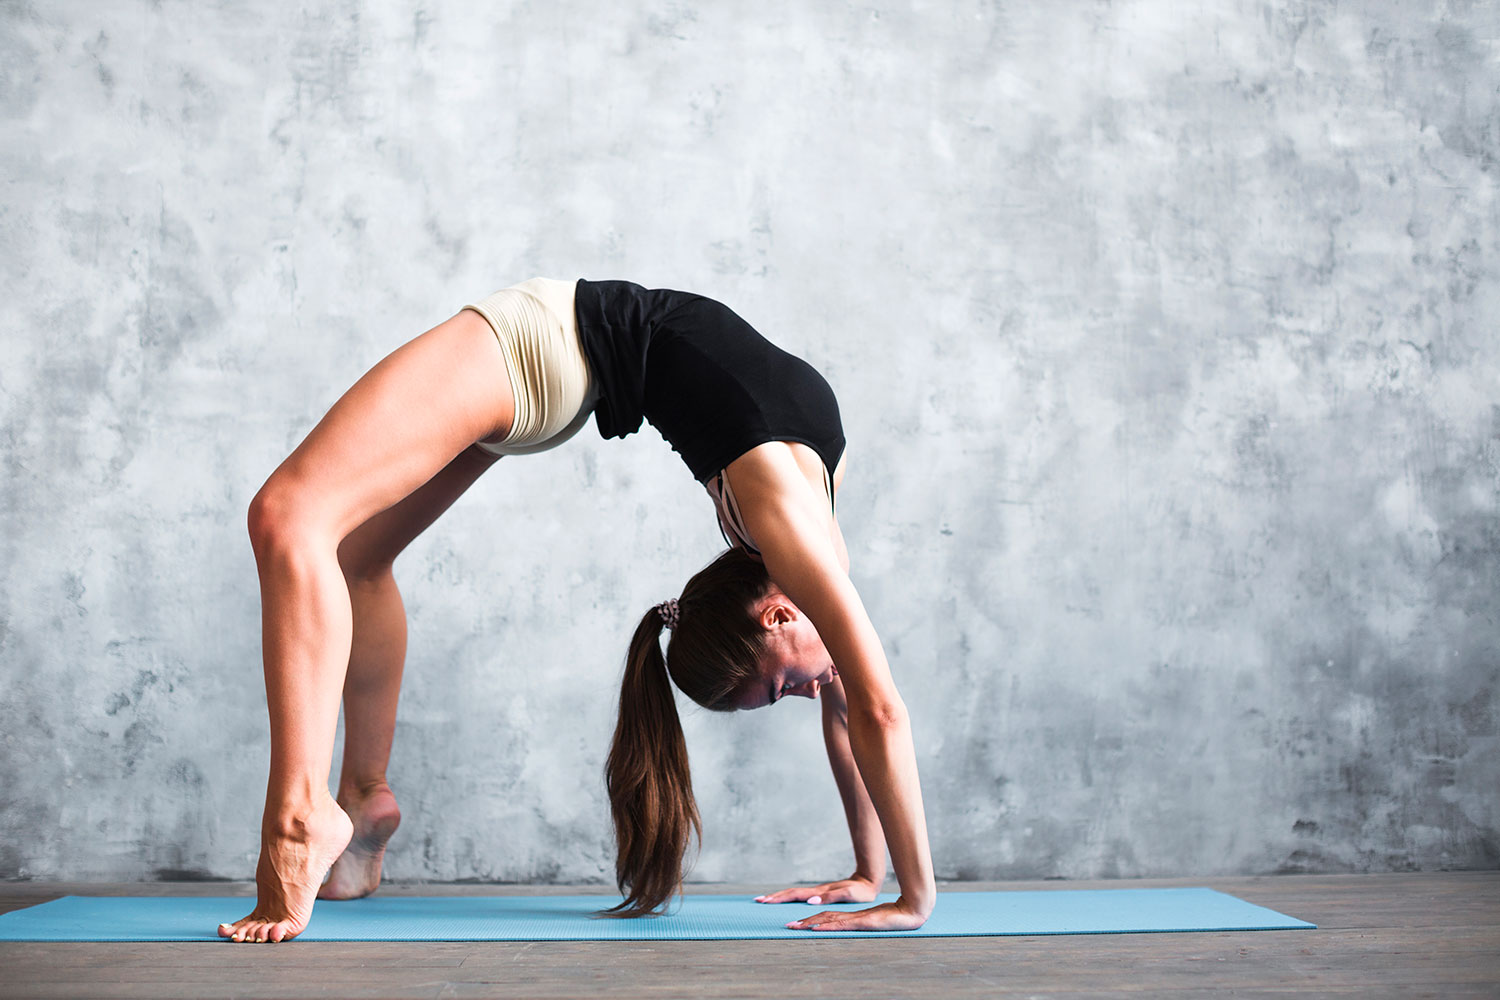 10 Yoga Poses That Prepare You For Full Wheel Pose Yoga Practice